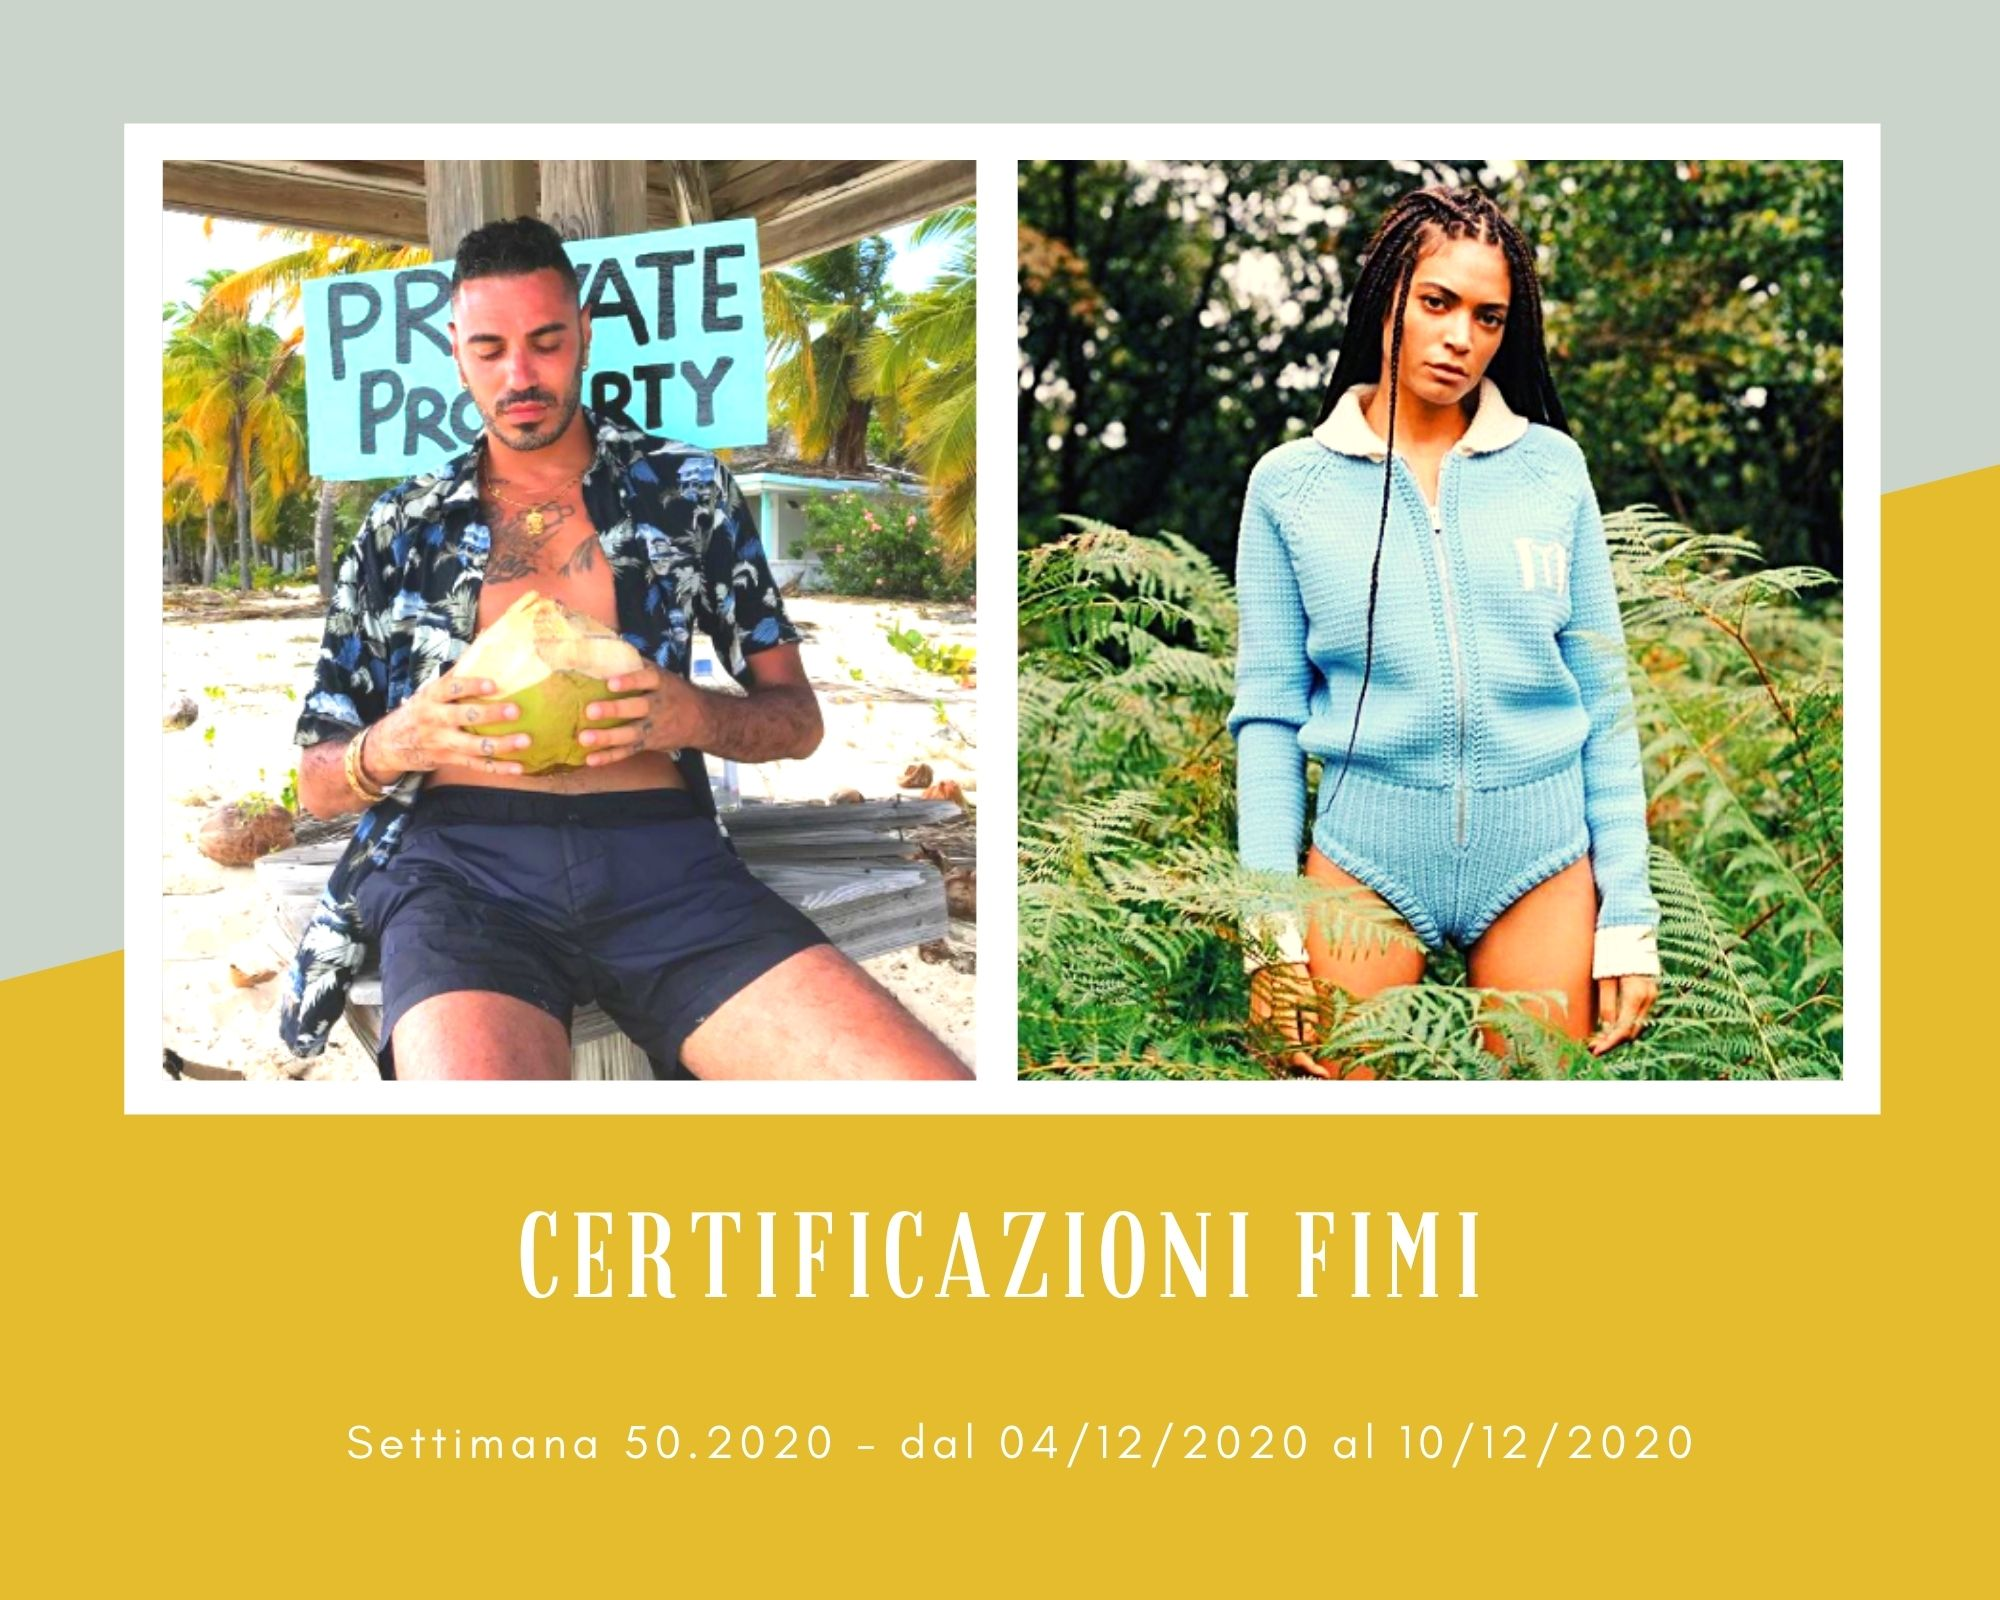 Certificazioni FIMI, week 50. Marracash e Elodie, il re e la regina del 2020